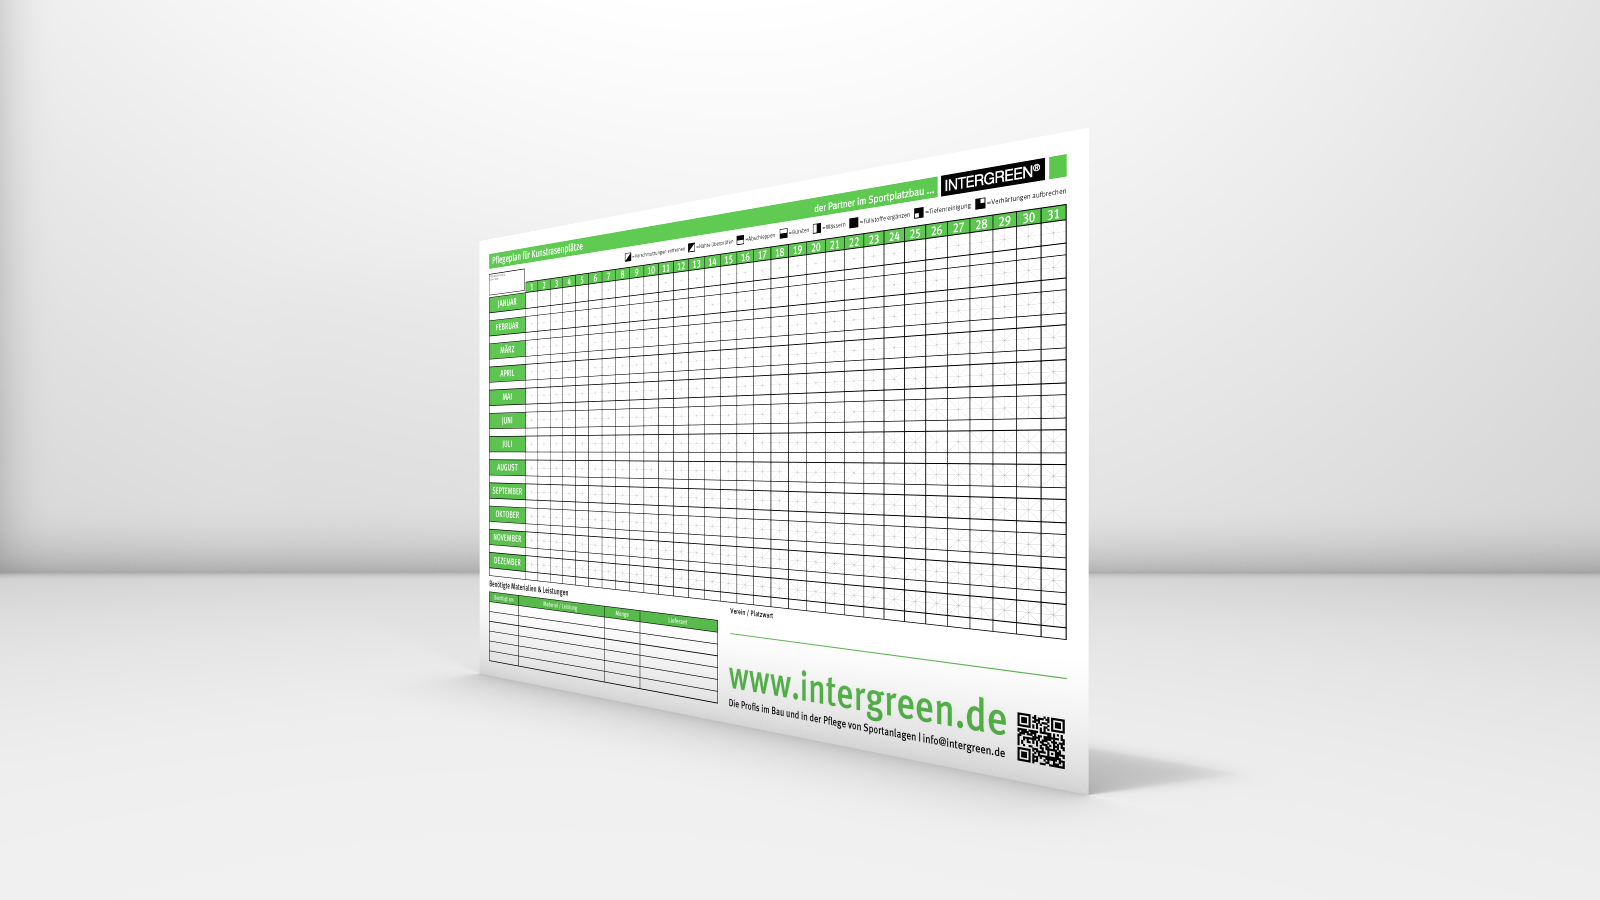 INTERGREEN BASIS WEB 20160129 001 Poster Pflegeplan Kunstrasen